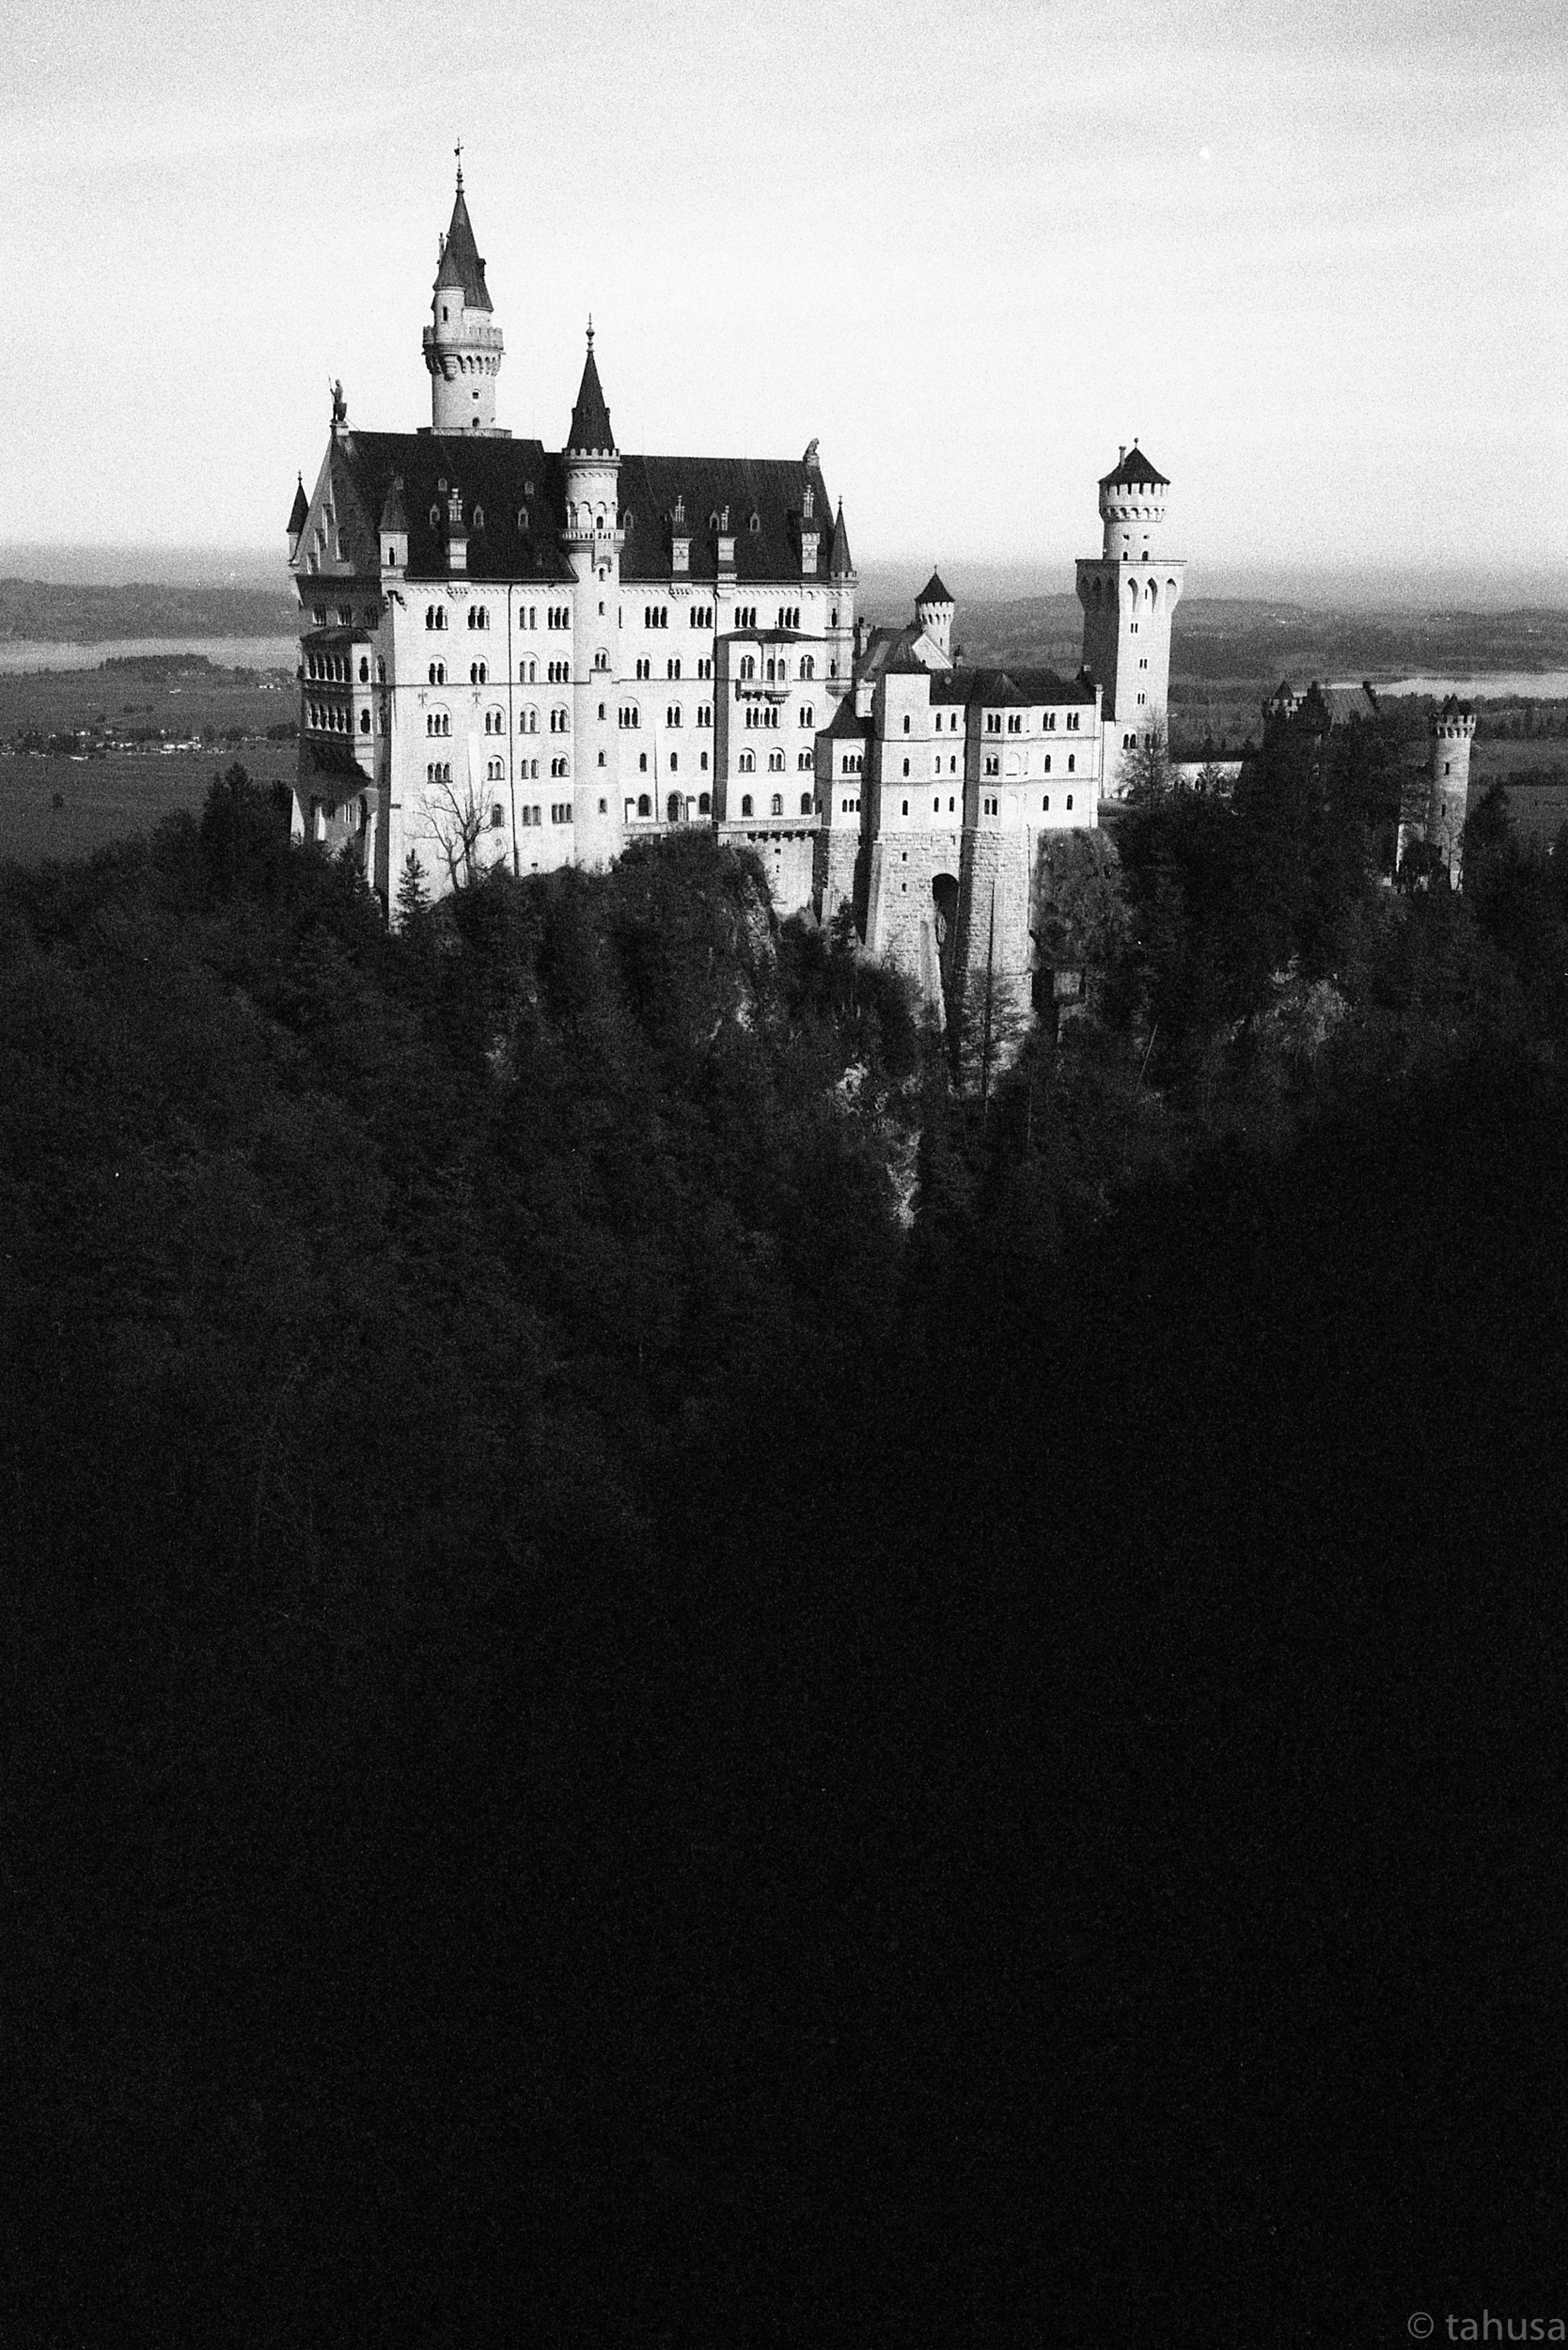 Castle-Fussen-Germany-travel-visit-Black-and-white-analog-film-leica-summicron-35mm-f2-35-v1-Kentmere-400-iso400-film-review